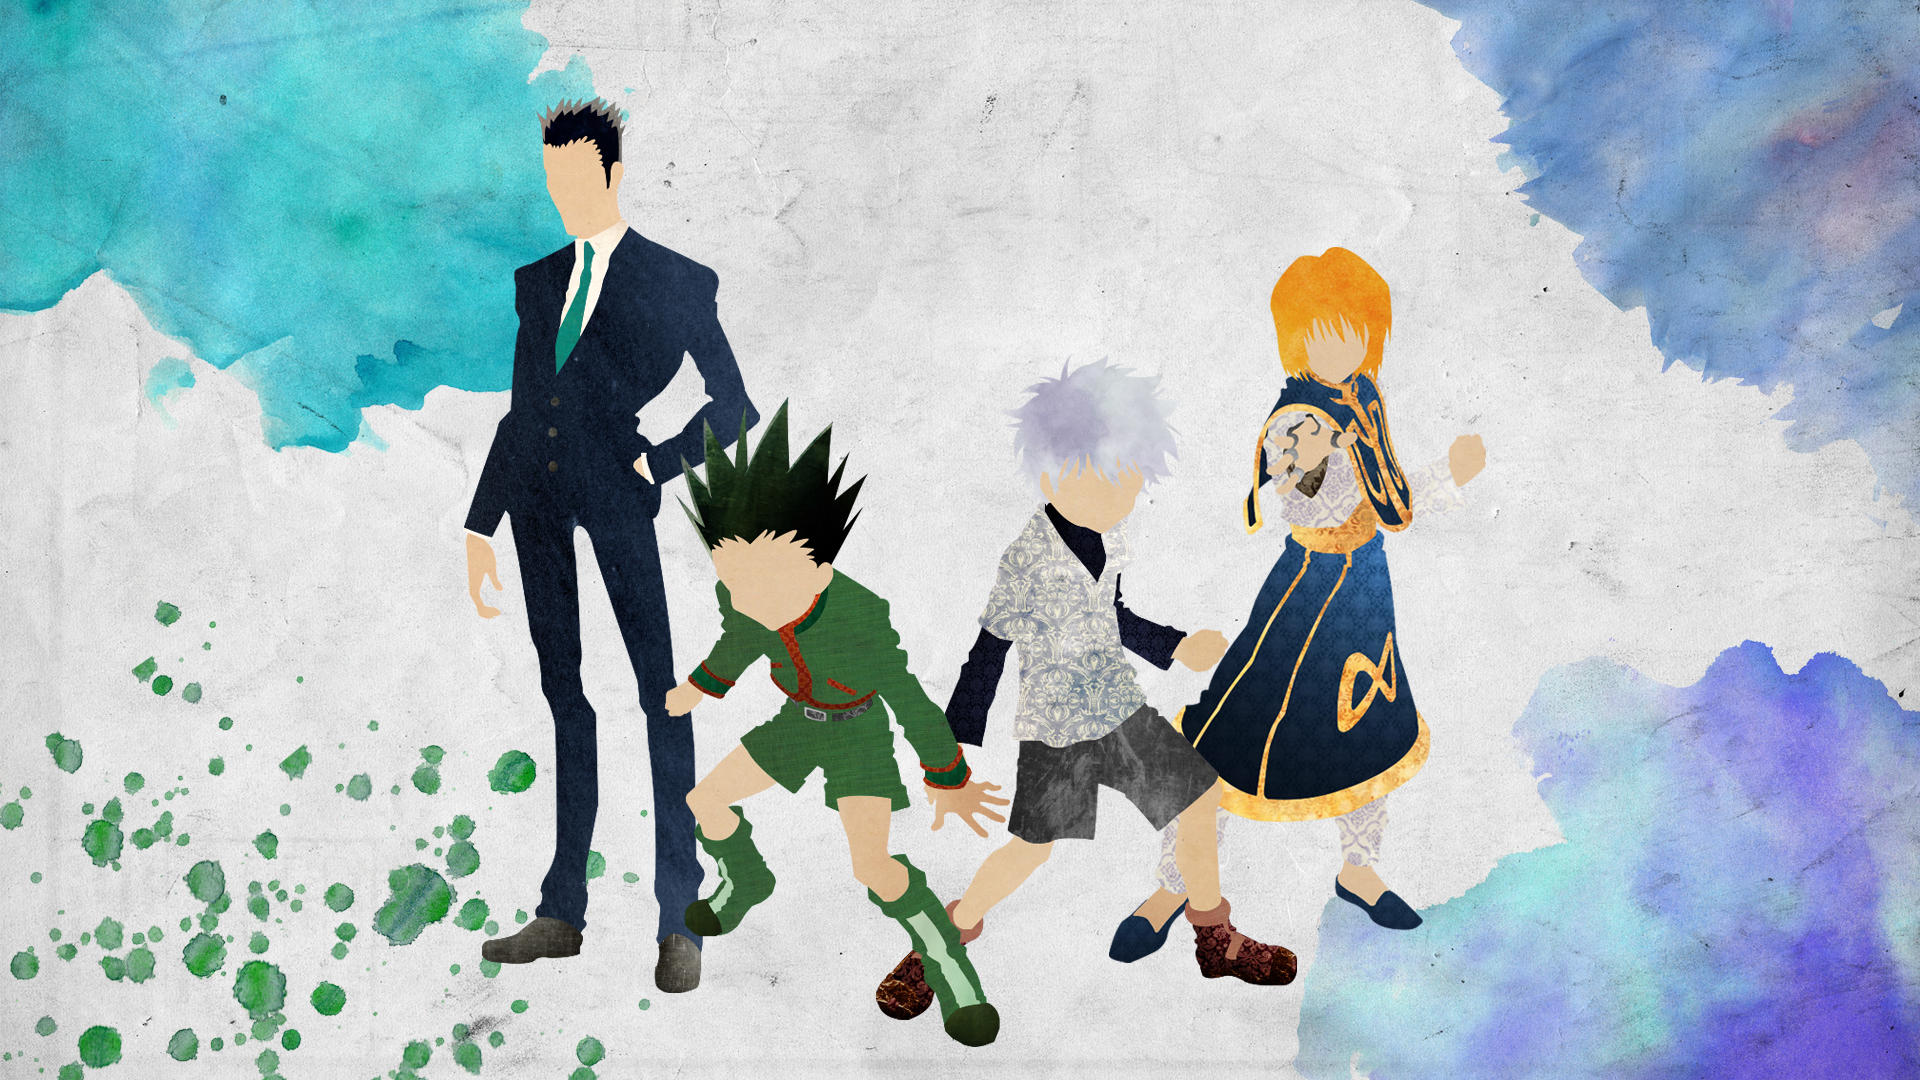 The Protagonists - Hunter x Hunter by doubleu42